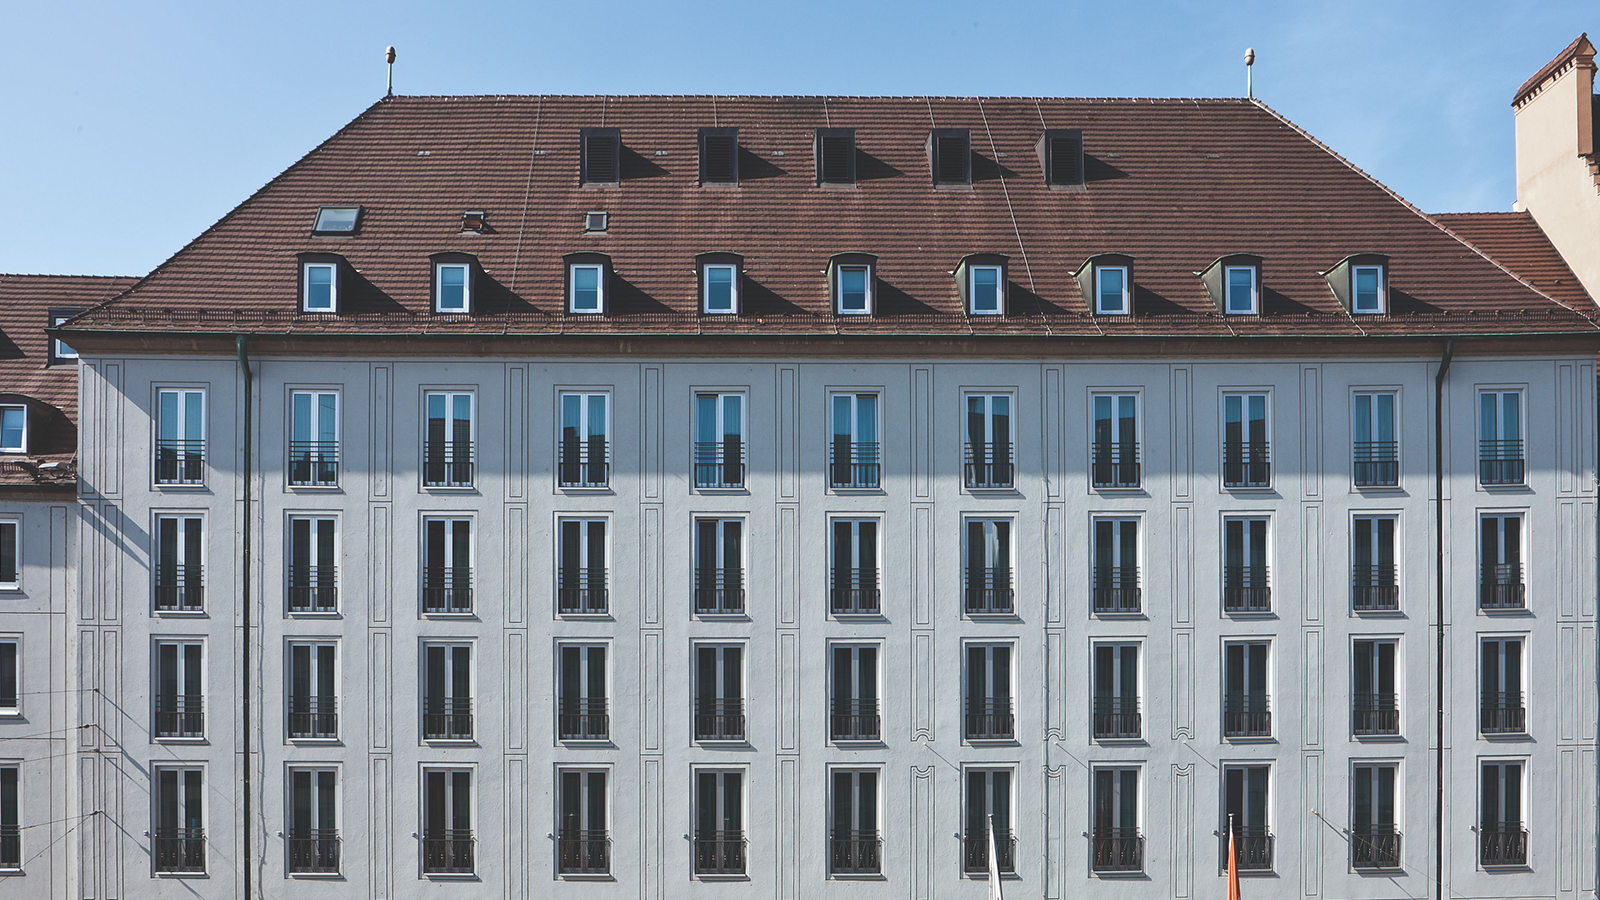 Image of Exterior Hotel Maximilian's, 1722, Member of Historic Hotels Worldwide, in Augsburg, Germany, Overview